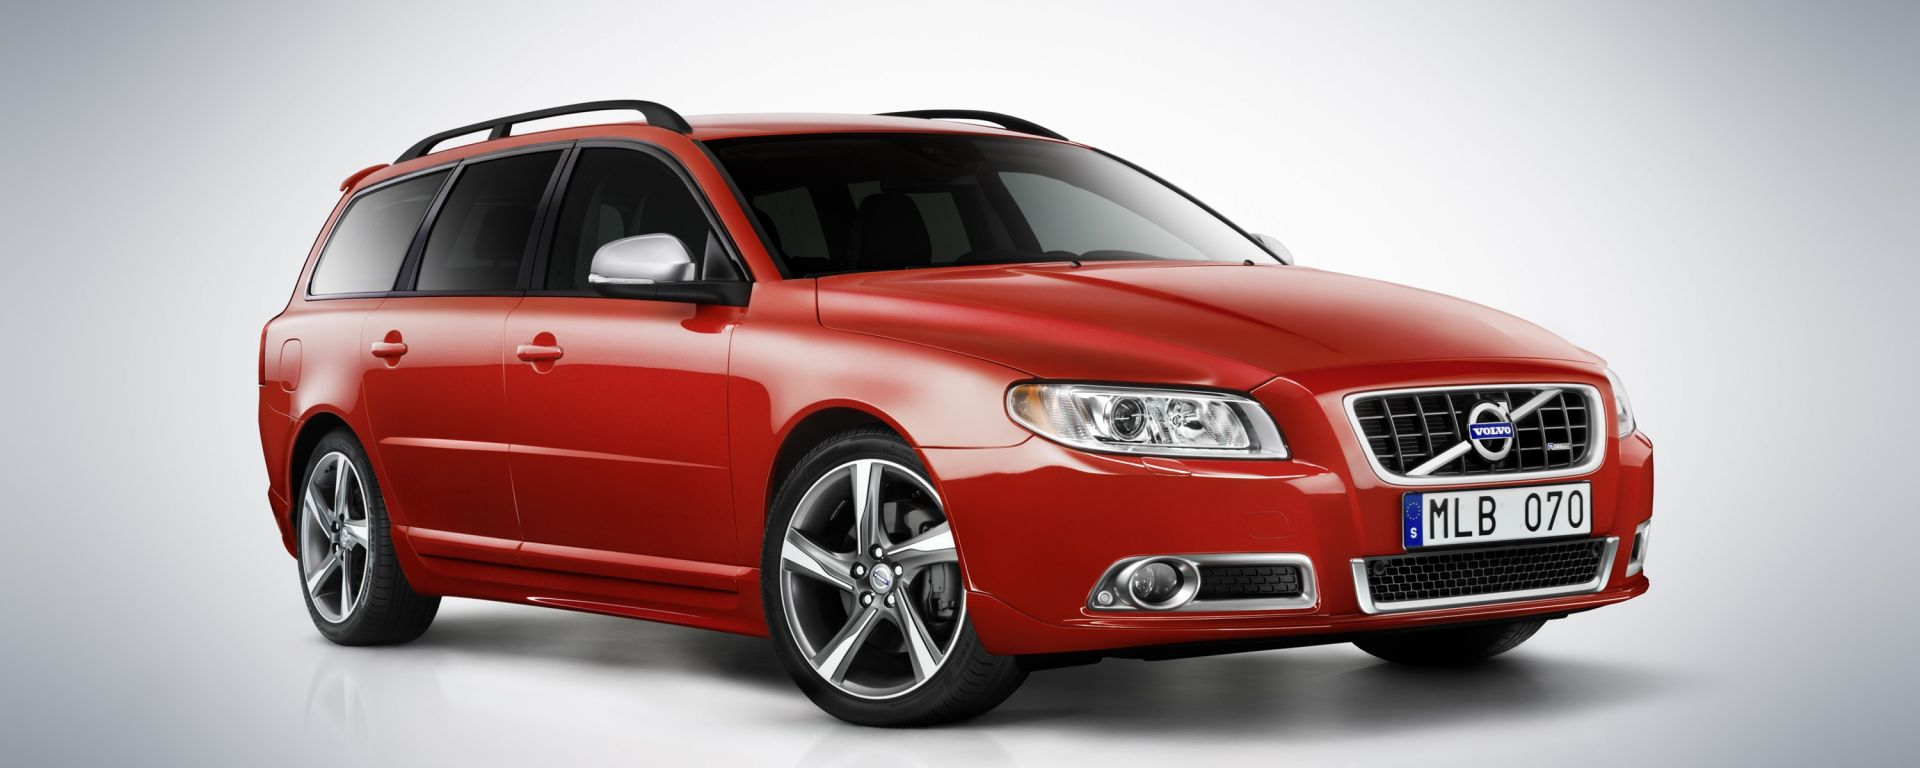 Volvo V70 R-Design e S80 Executive